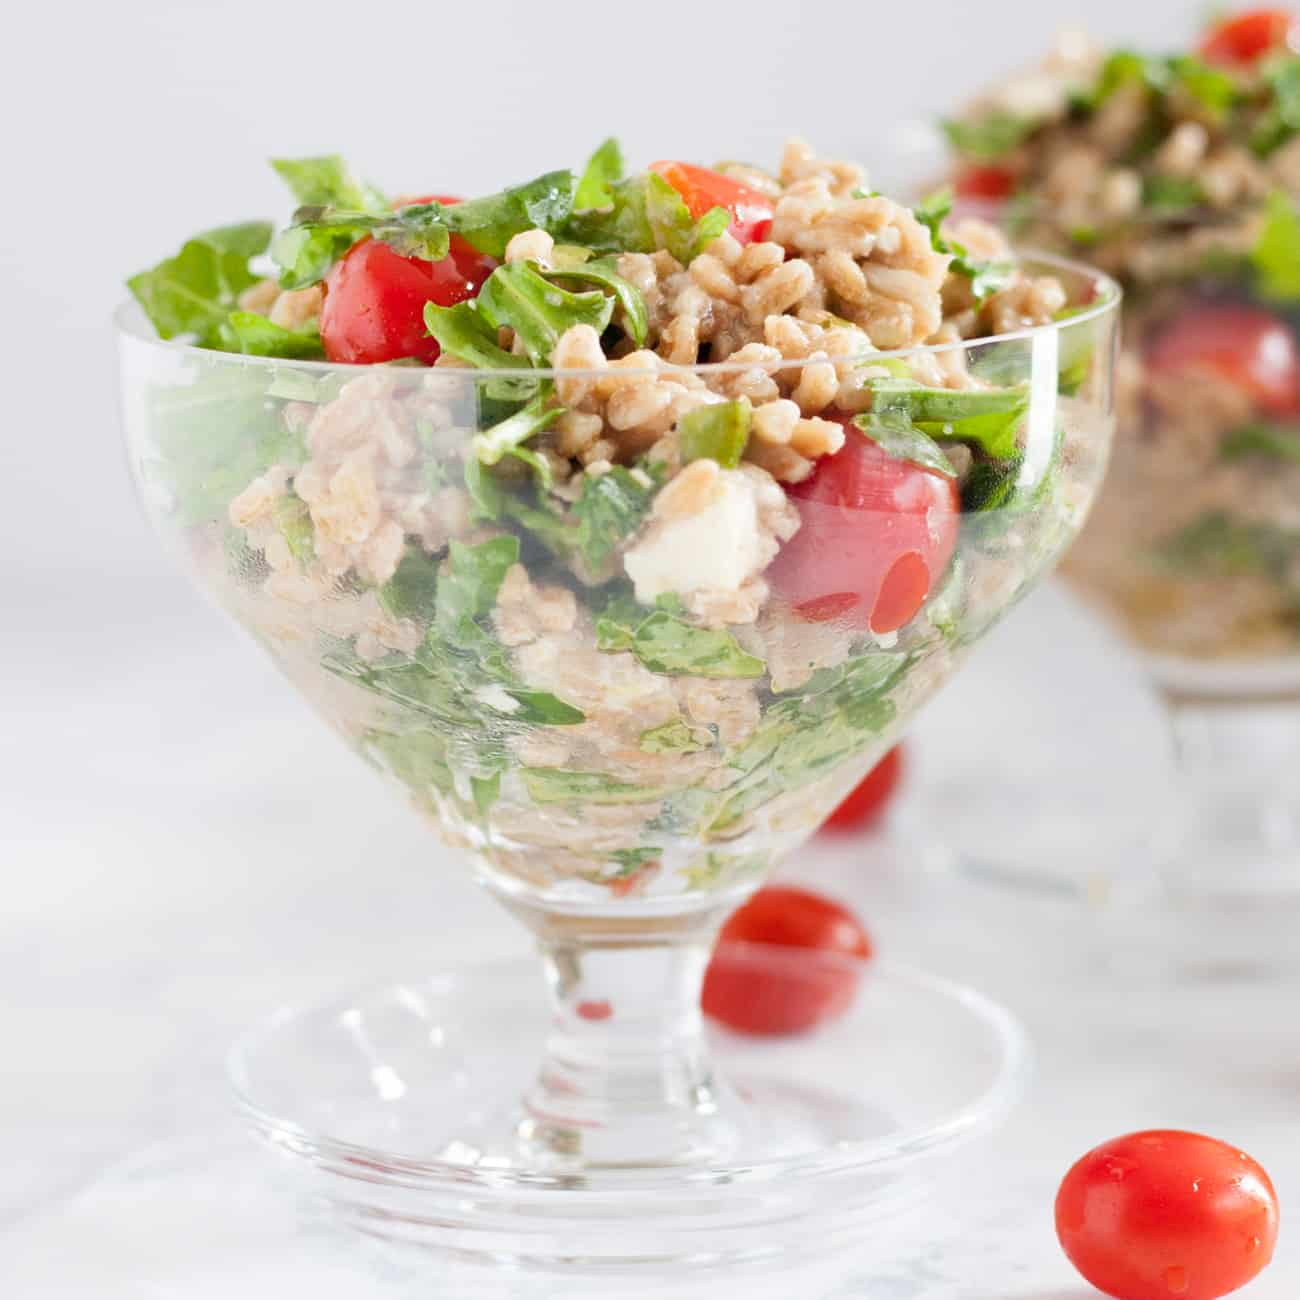 Bright Mediterranean inspired flavors make this feta farro salad a perfect main dish for a light meal, or a refreshing side for a picnic or barbecue. It's a great way to try ancient grains in your diet! * Recipe on GoodieGodmother.com